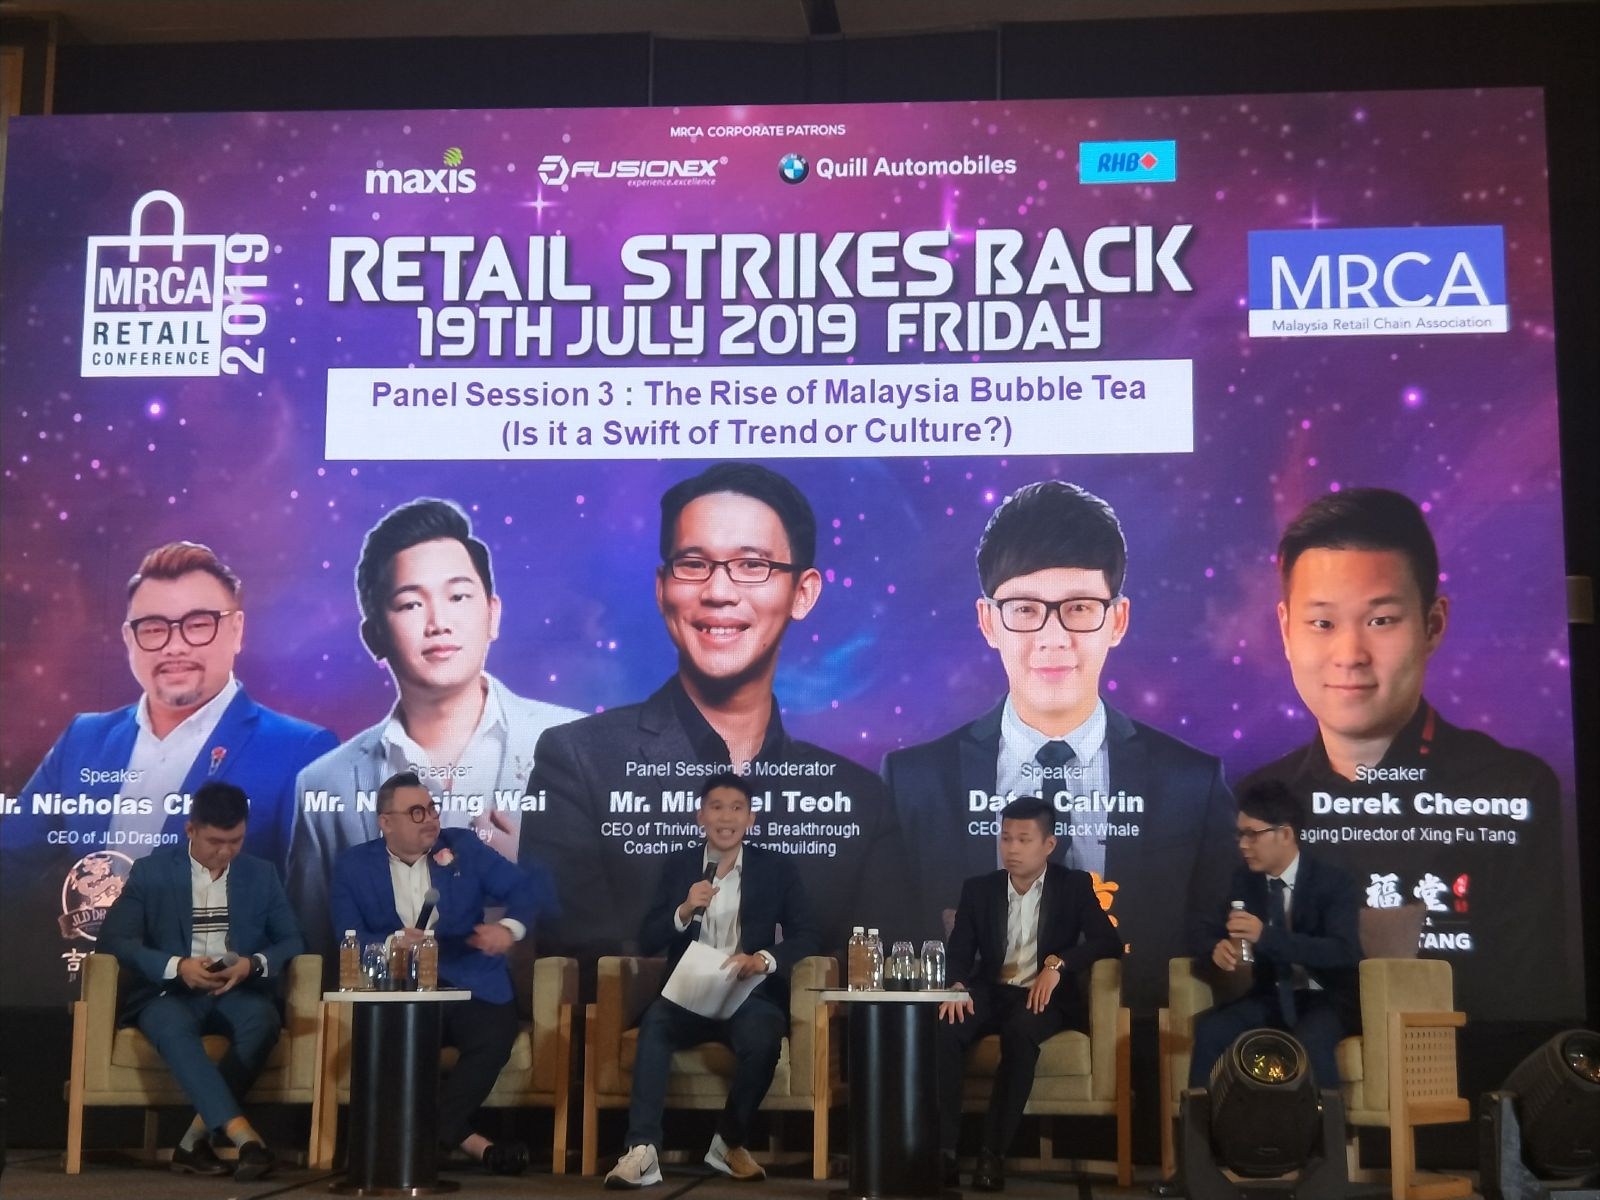 MRCA Retail Conference 2019